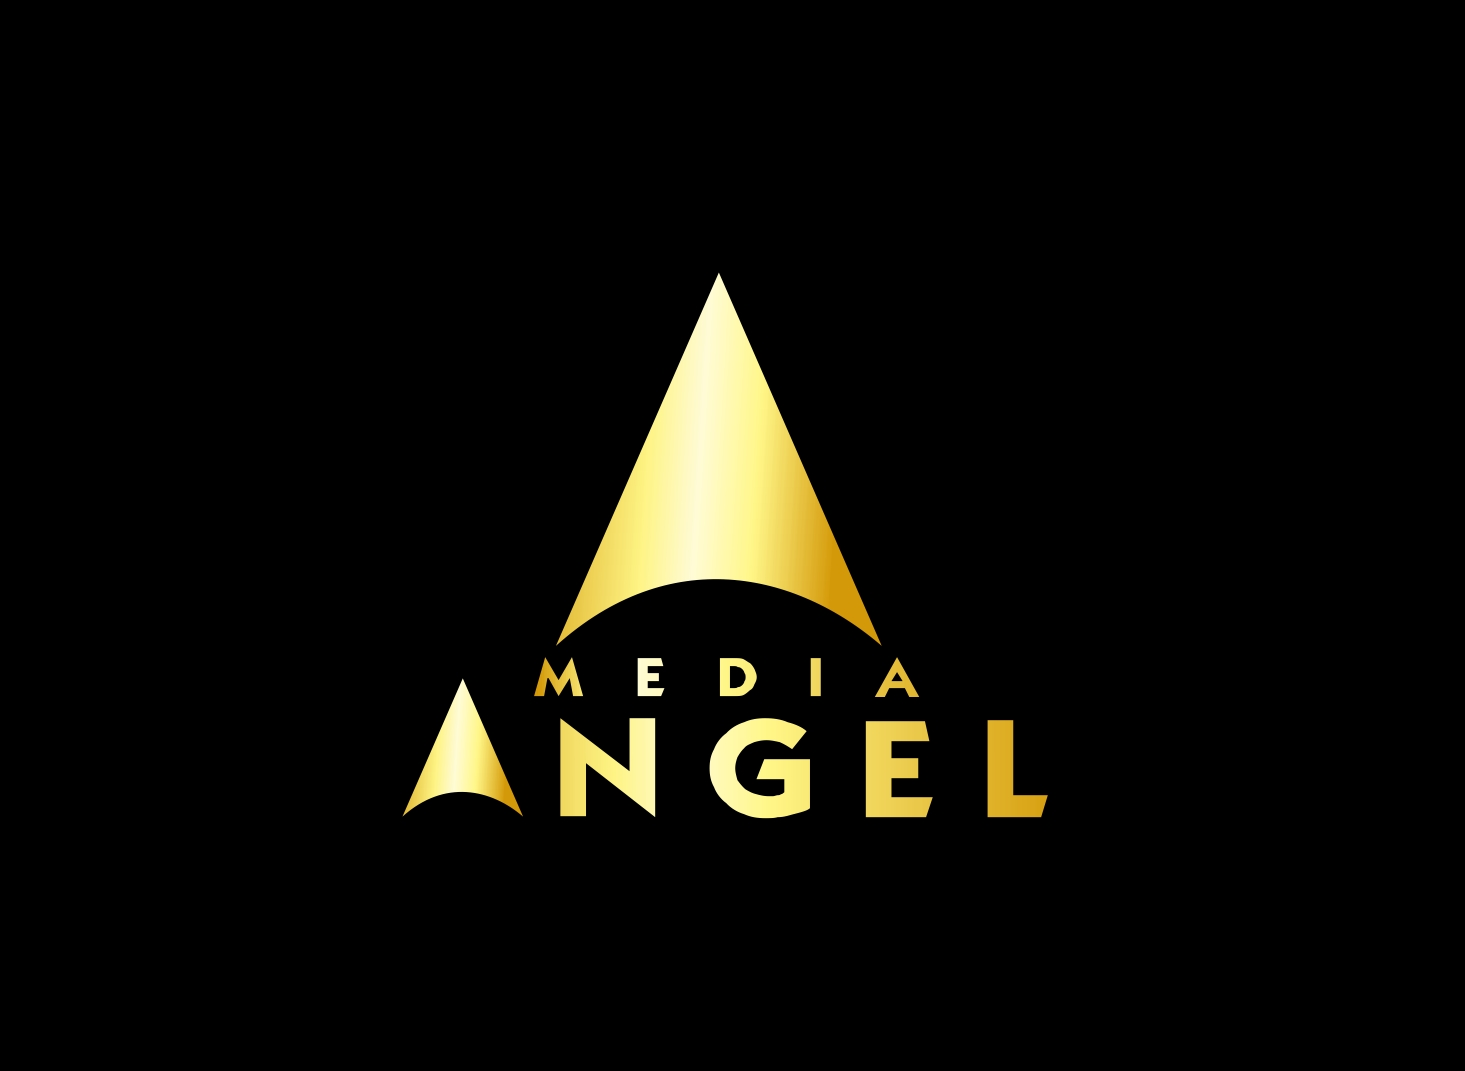 Logo Design by Zdravko Krulj - Entry No. 114 in the Logo Design Contest New Logo Design for Media Angels.